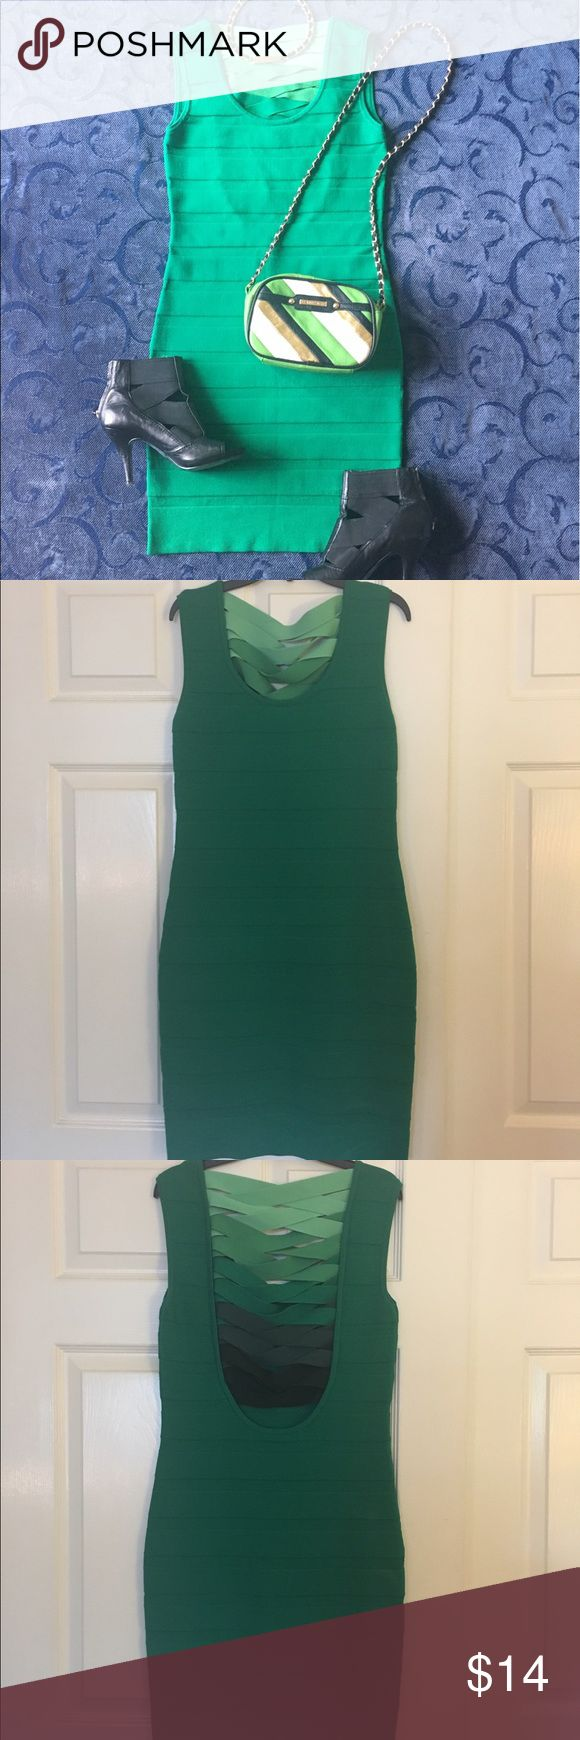 WOW couture bandage dress 👗 💚 Gorgeous green bandage dress size Large with scoop neckline and ombré criss cross strap details in back.  Tiny snag near bottom is pictured, the thread is on the inside of dress.  Never worn out, would be perfect for a girls night out or if you were going for a sexy Leprechaun look 👀! WOW couture Dresses Mini